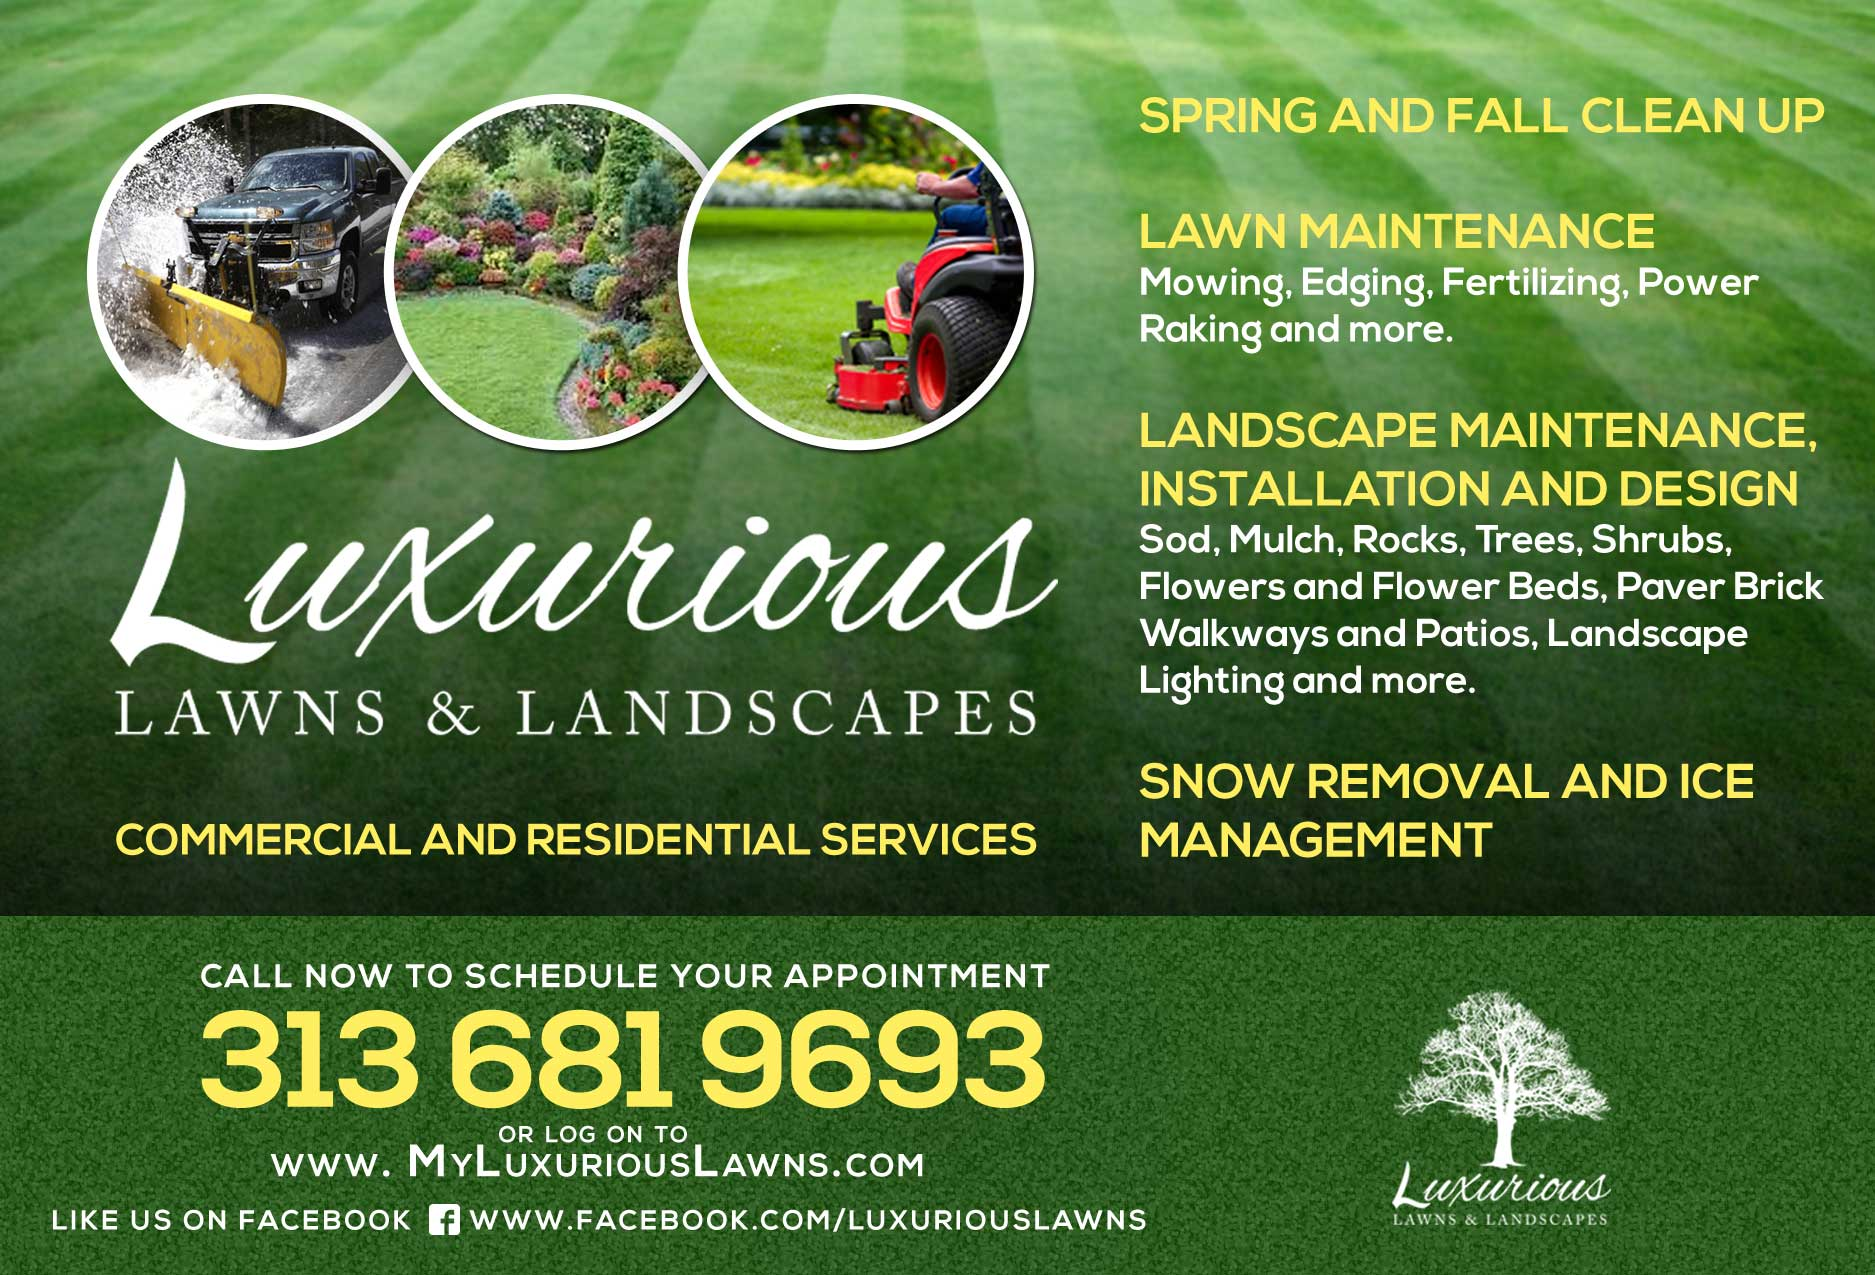 Luxurious Lawns and Landscapes Flyer